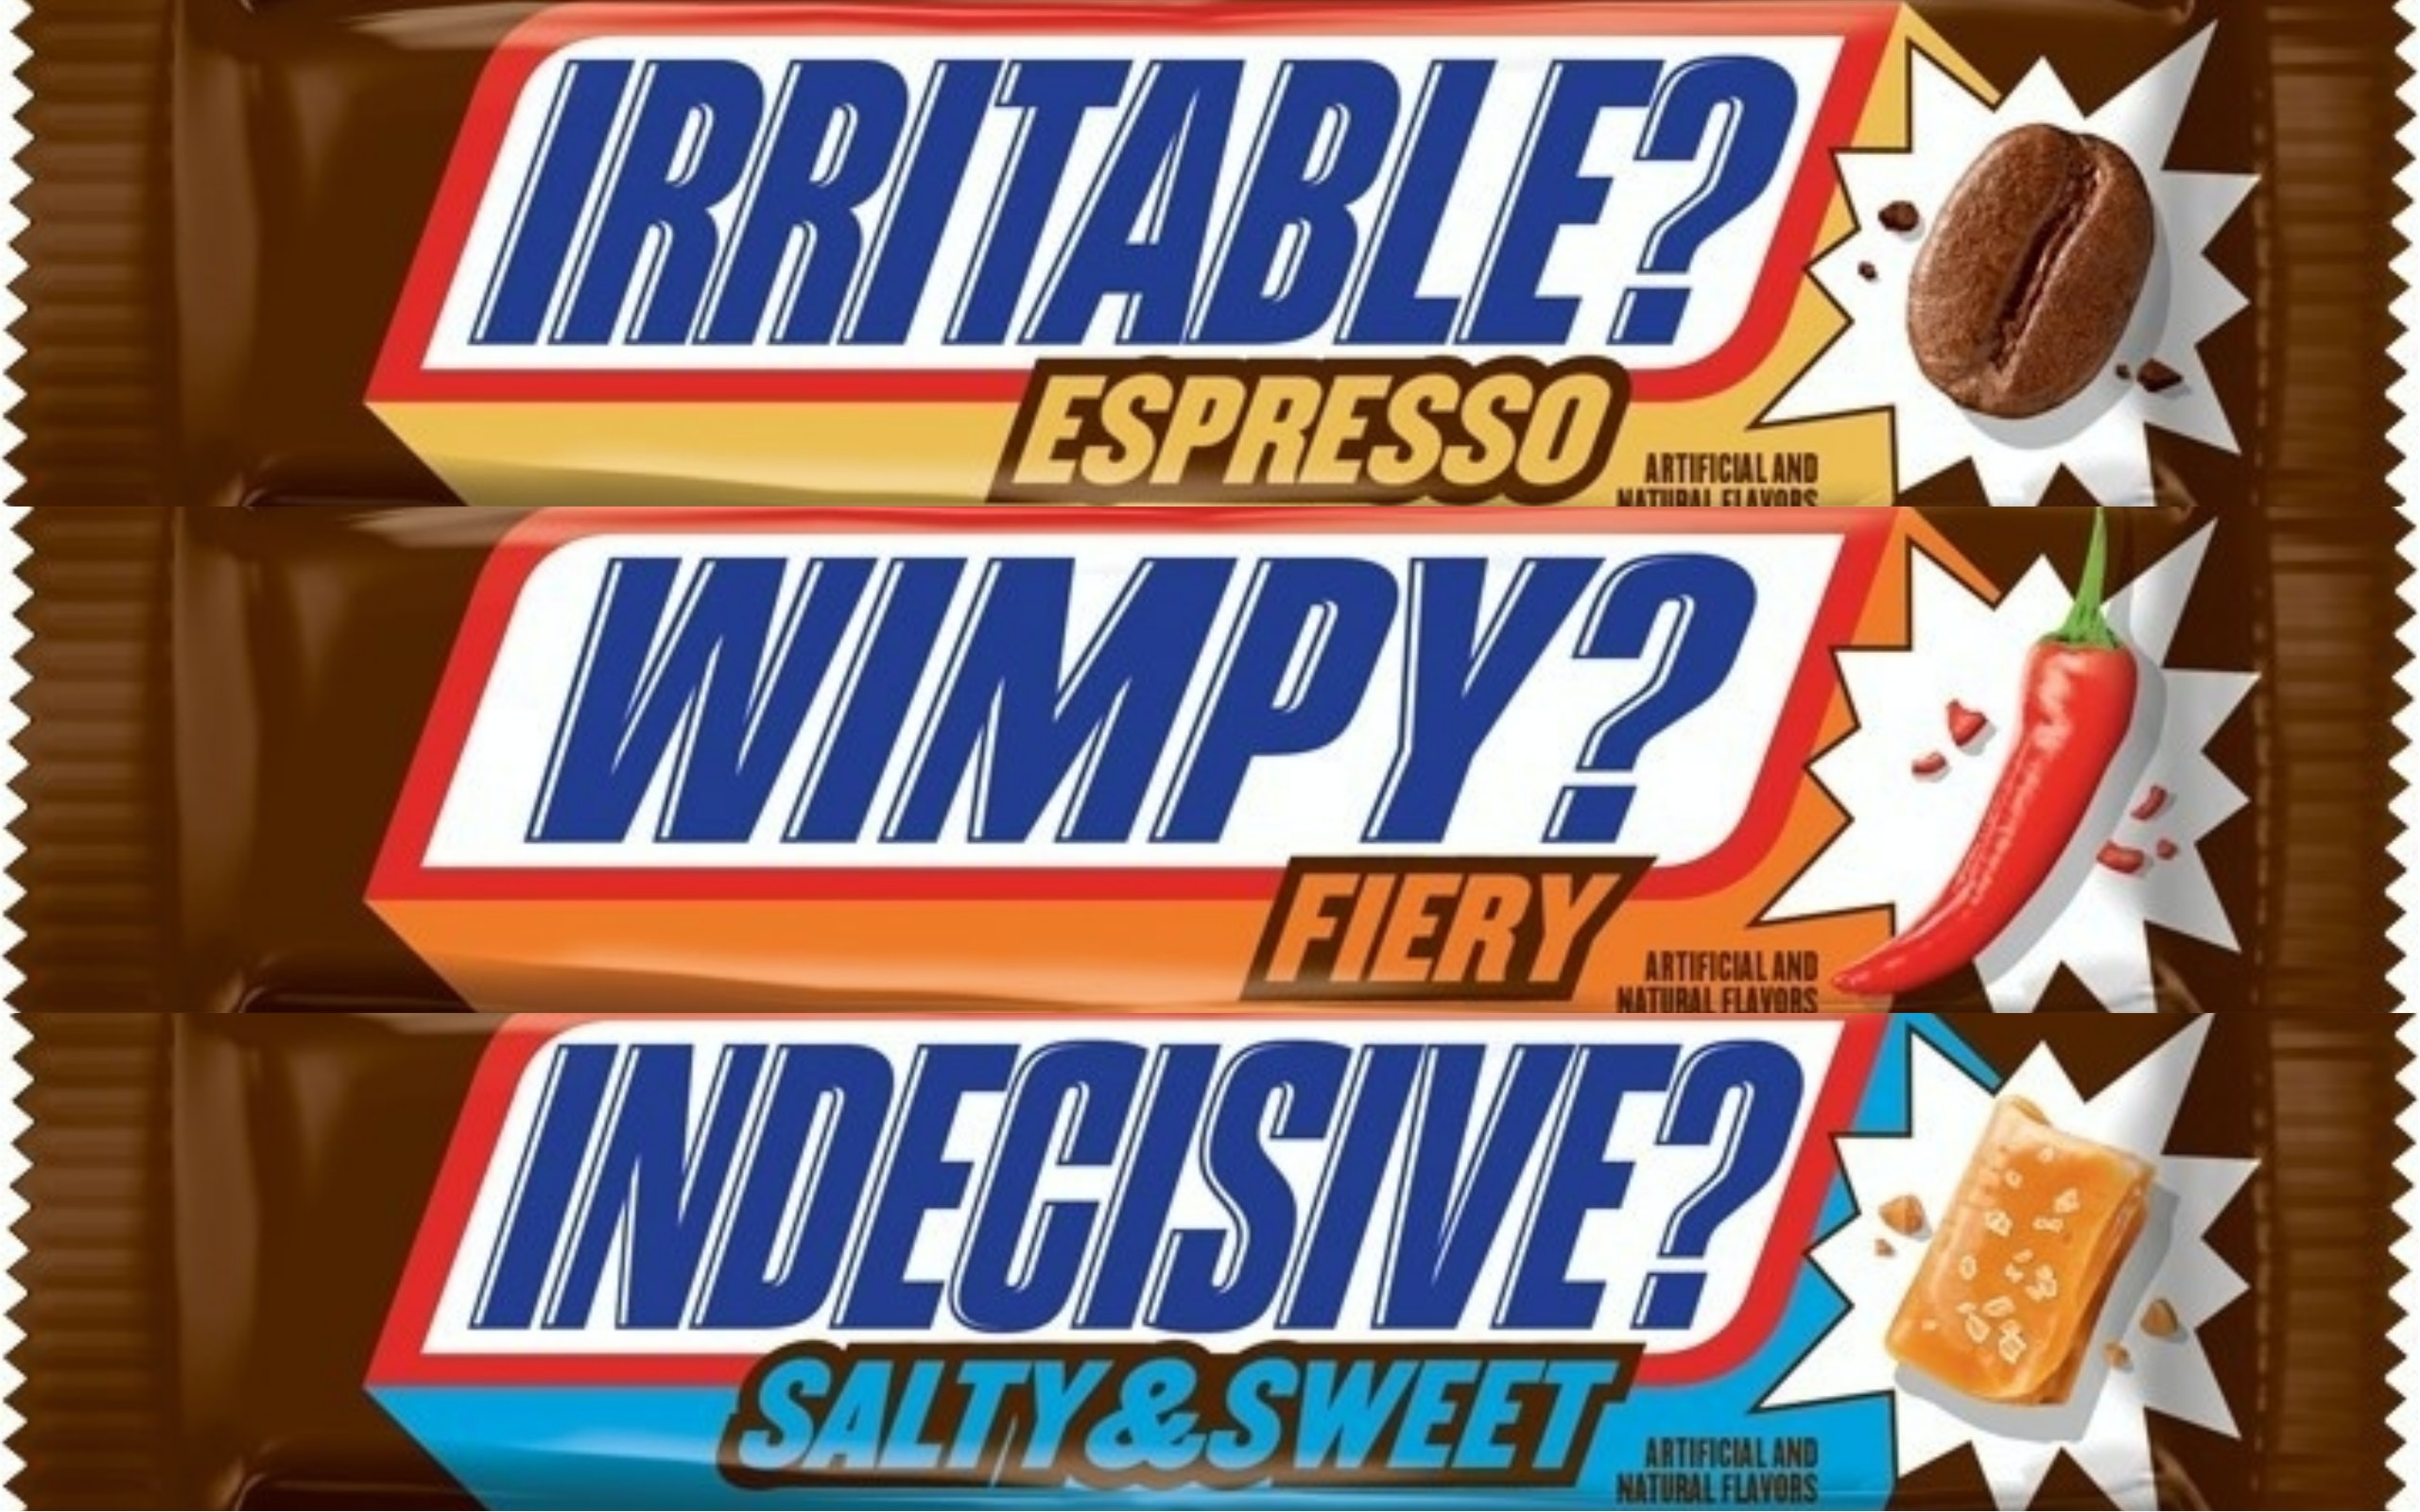 Snickers Has Three New Flavors, Including Espresso, Fiery